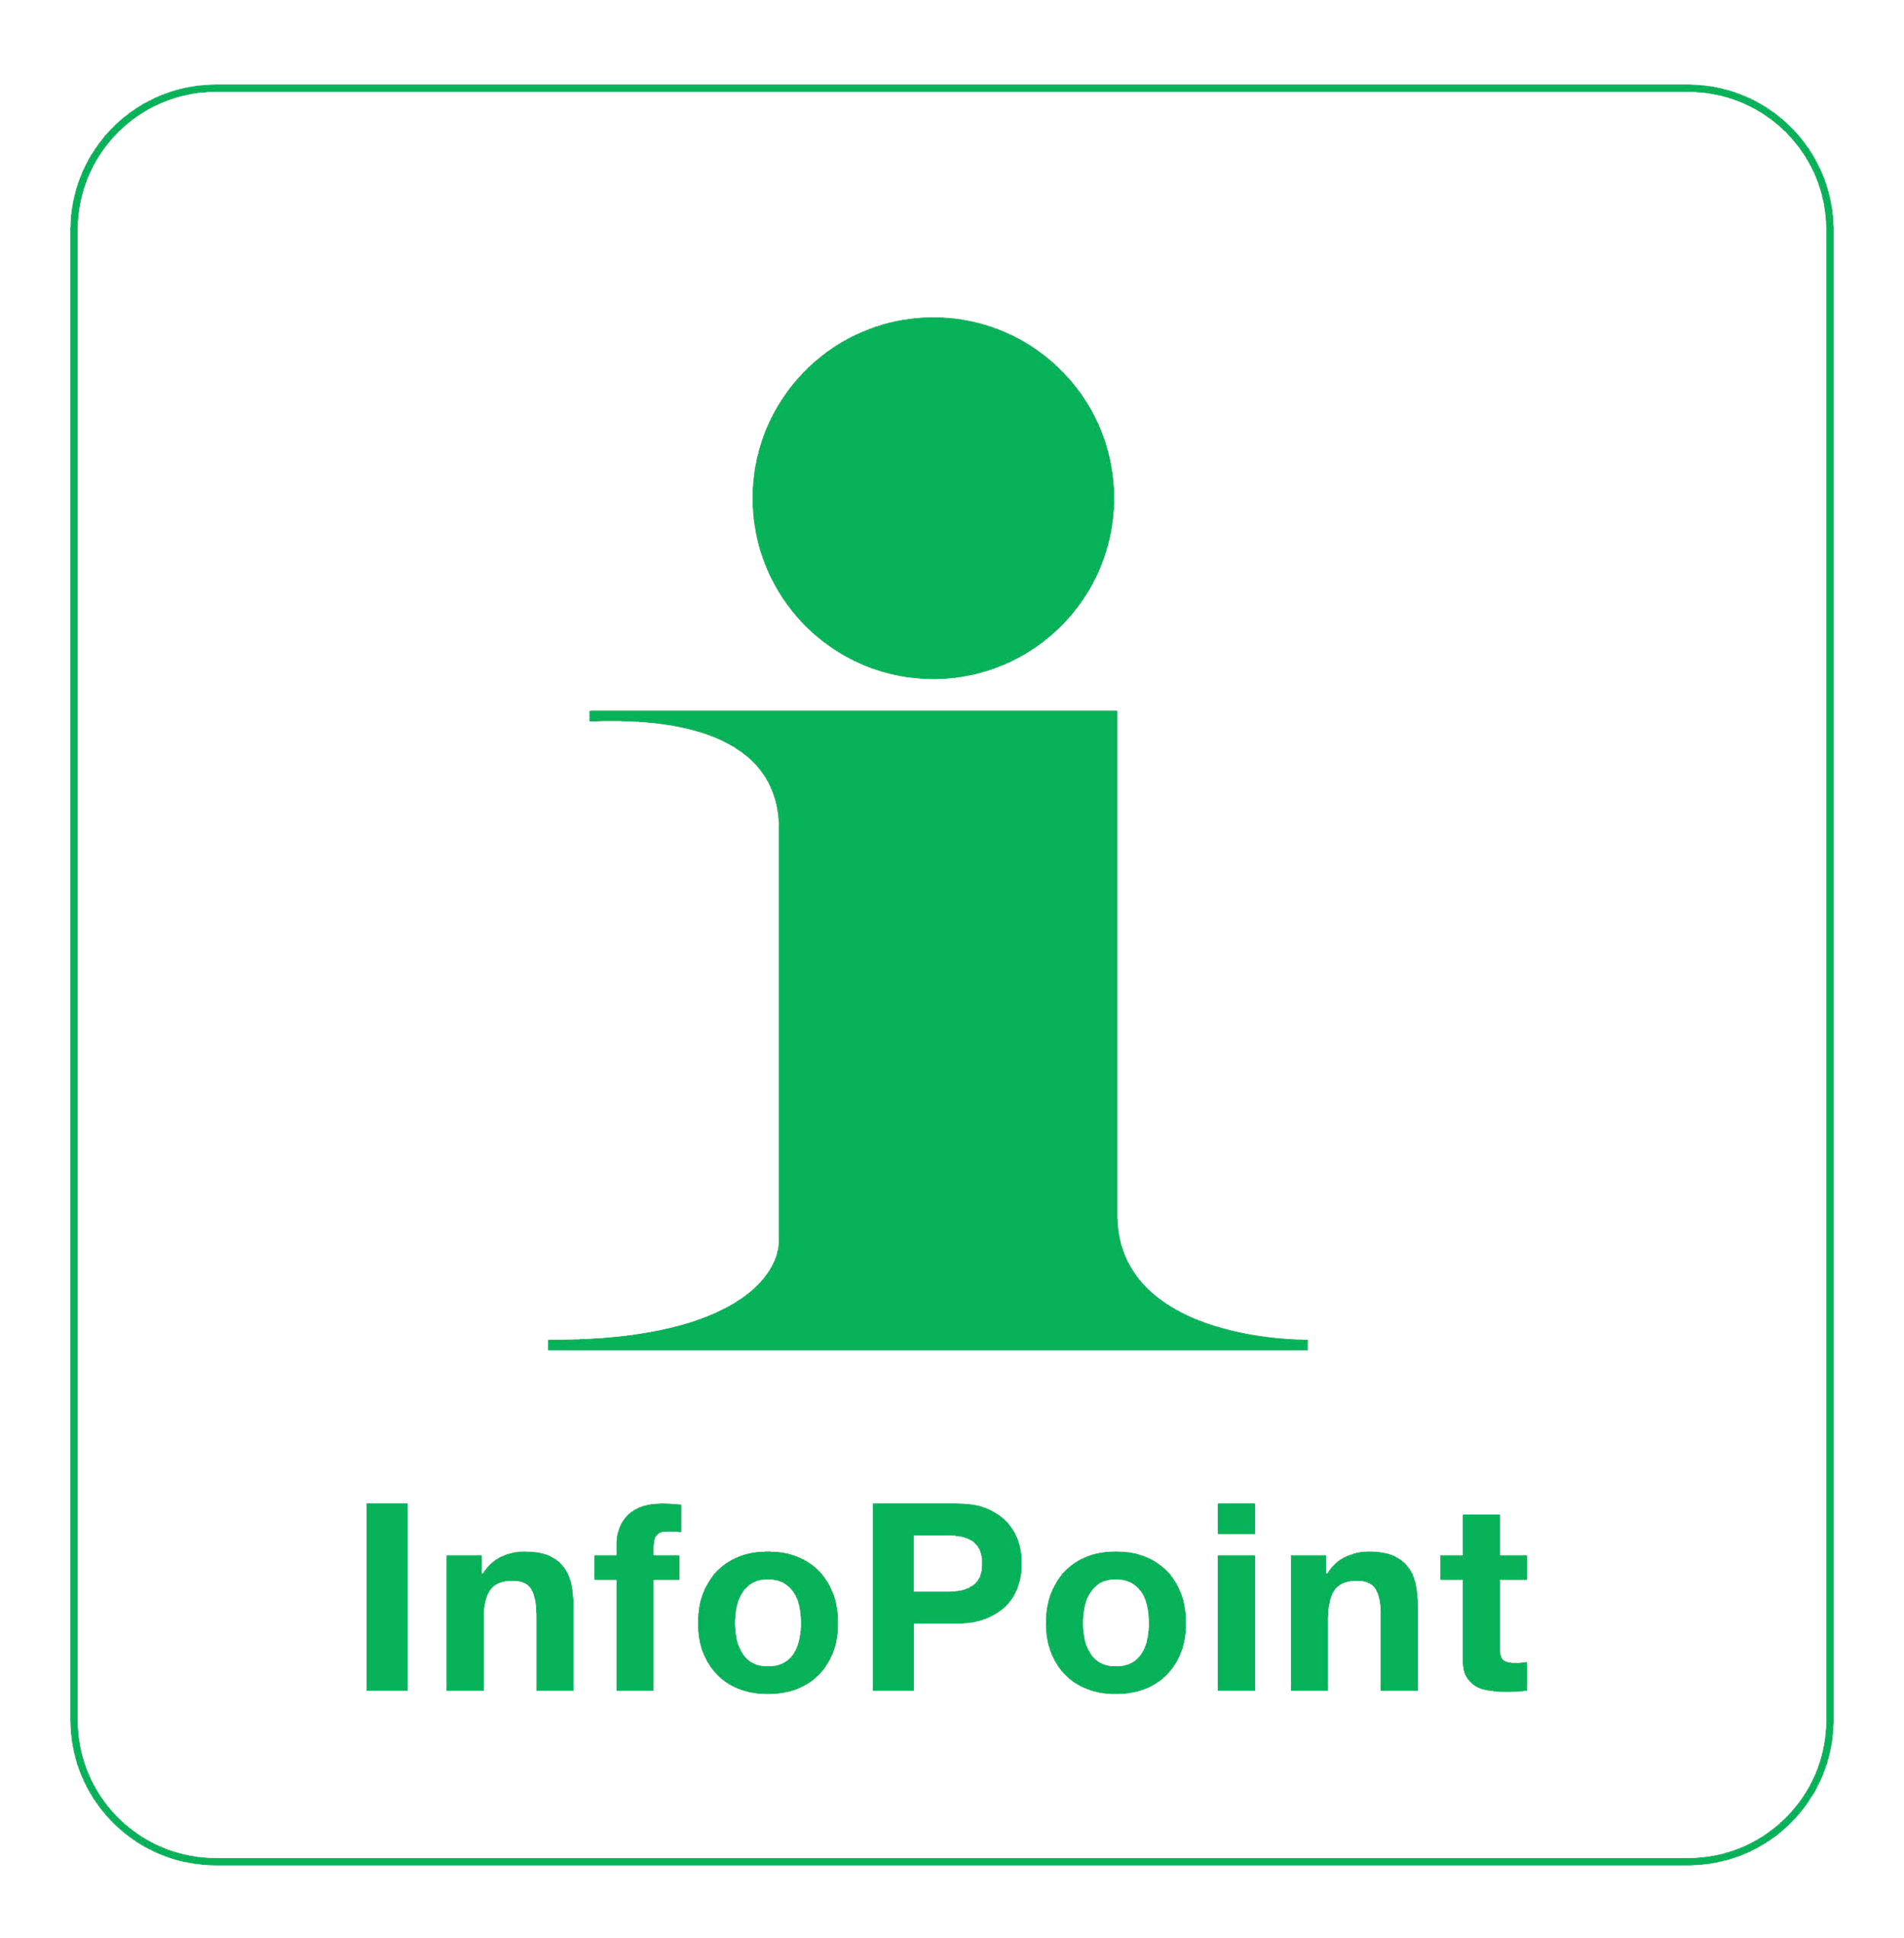 InfoPoint_square.png